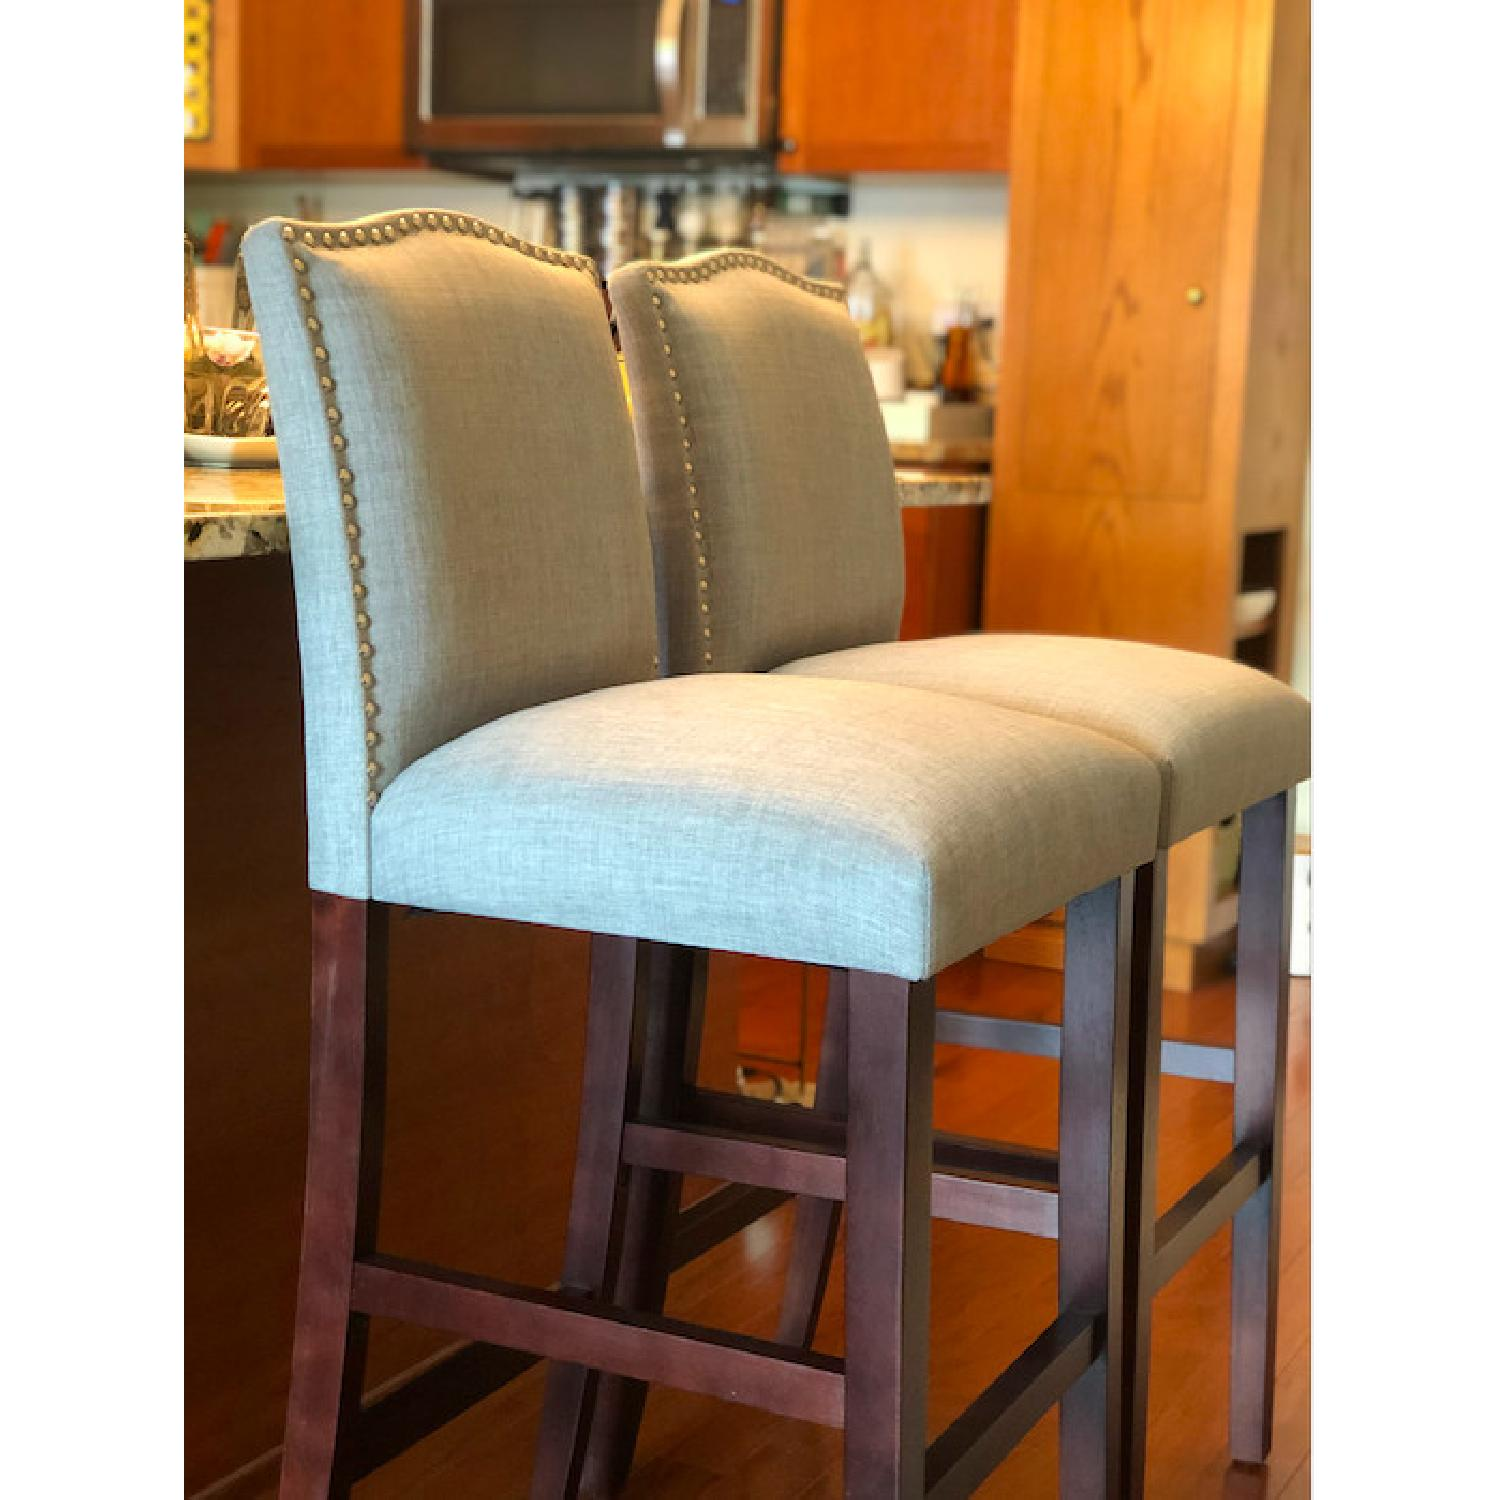 Skyline Furniture Gray Linen Upholstered Nail Button Stools - image-3